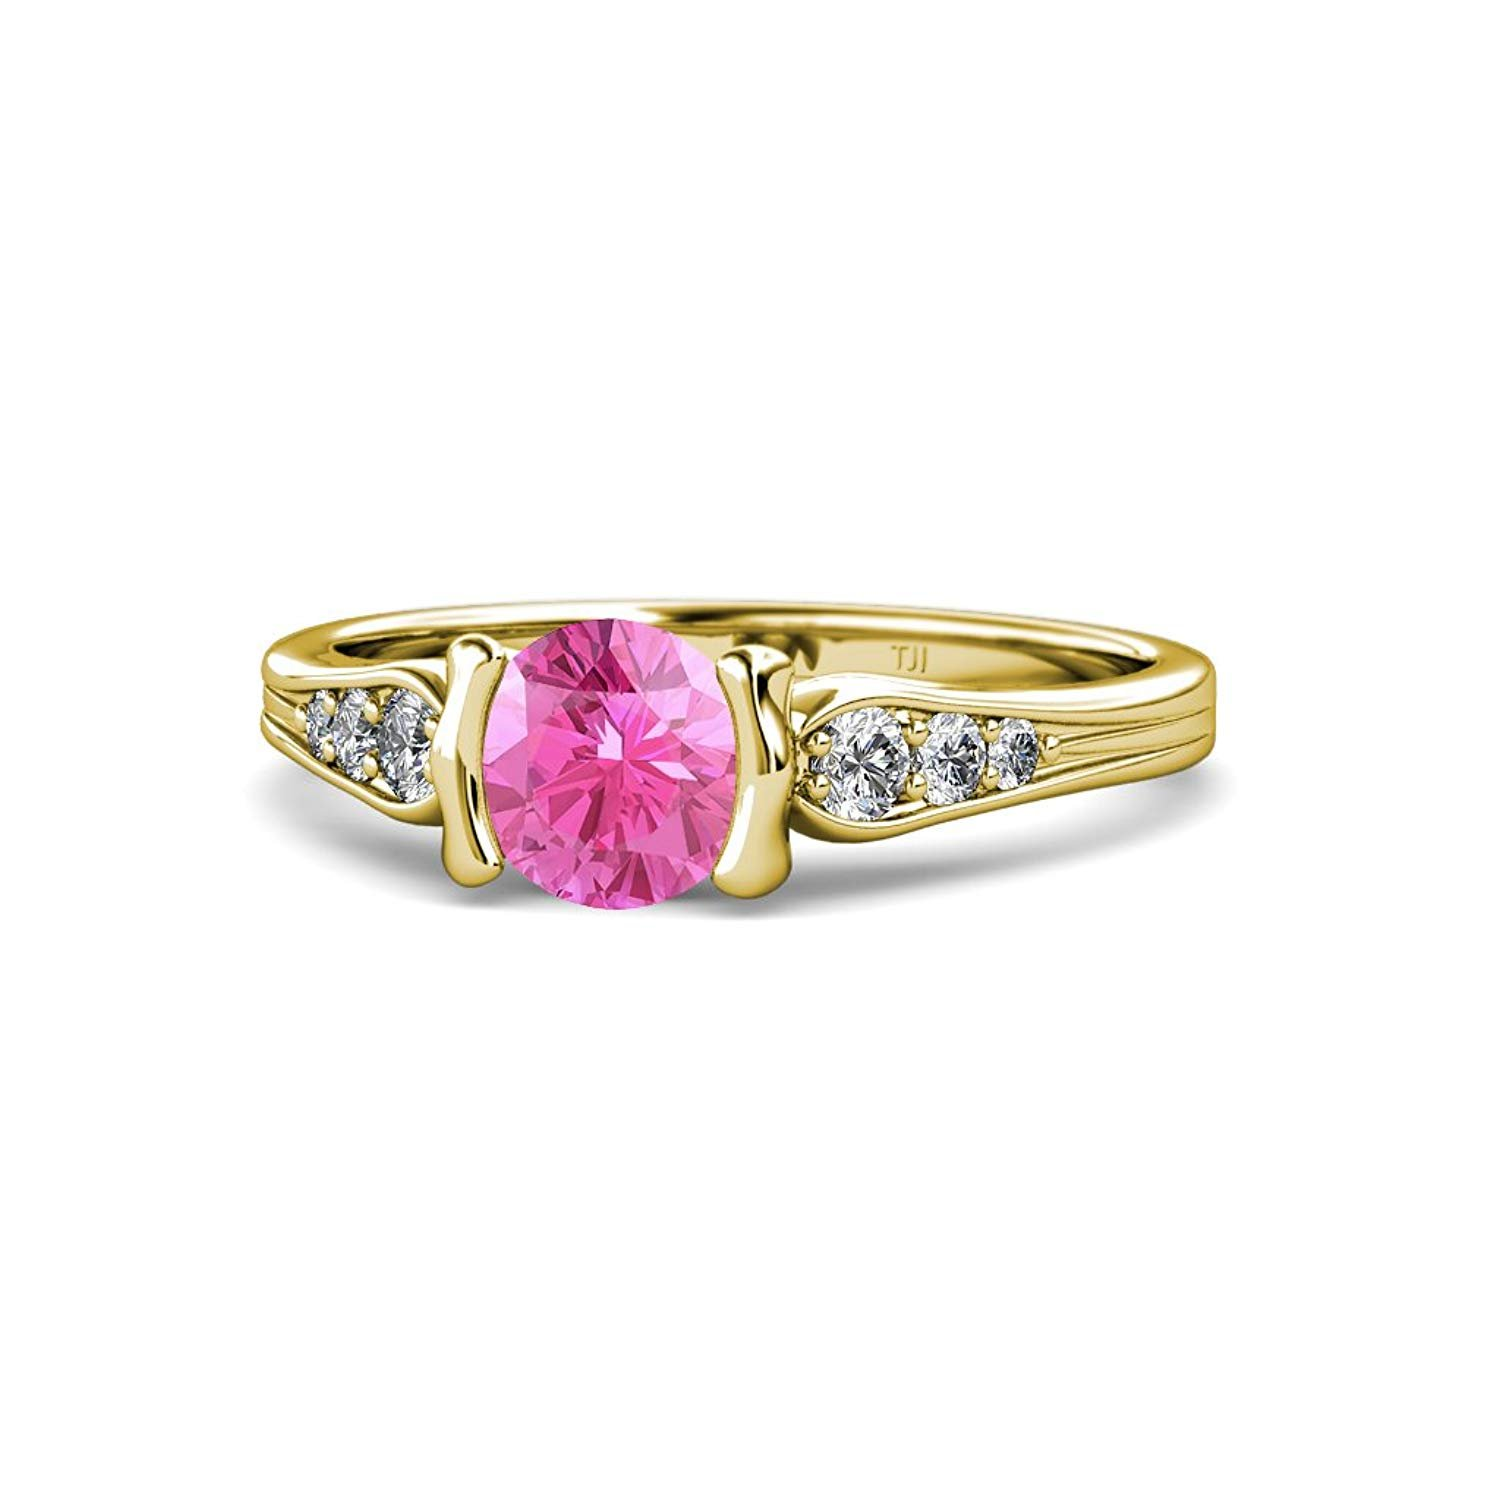 Pink Sapphire and Diamond (SI2-I1, G-H) Half Bezel Engagement Ring 1.26 ct tw in 14K Yellow Gold by TriJewels